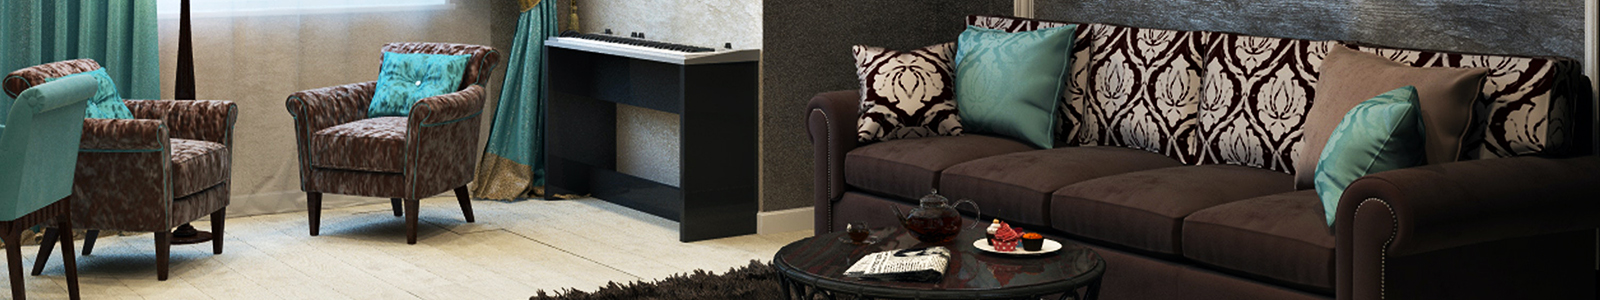 Furniture and Living in Auckland - Local Biz